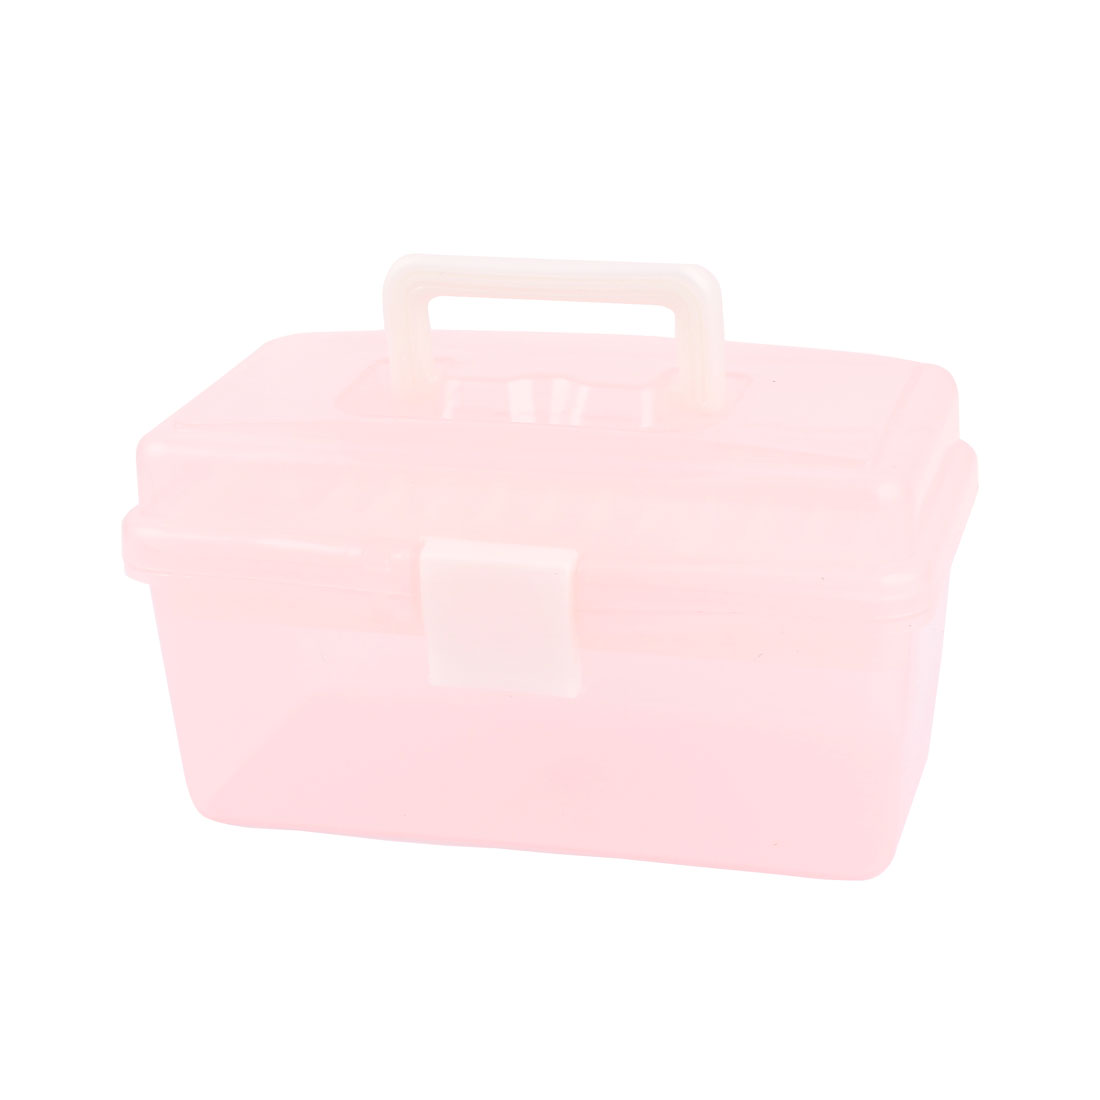 Plastic Rectangle Shaped Double Layers Storage Box Holder Case Pink